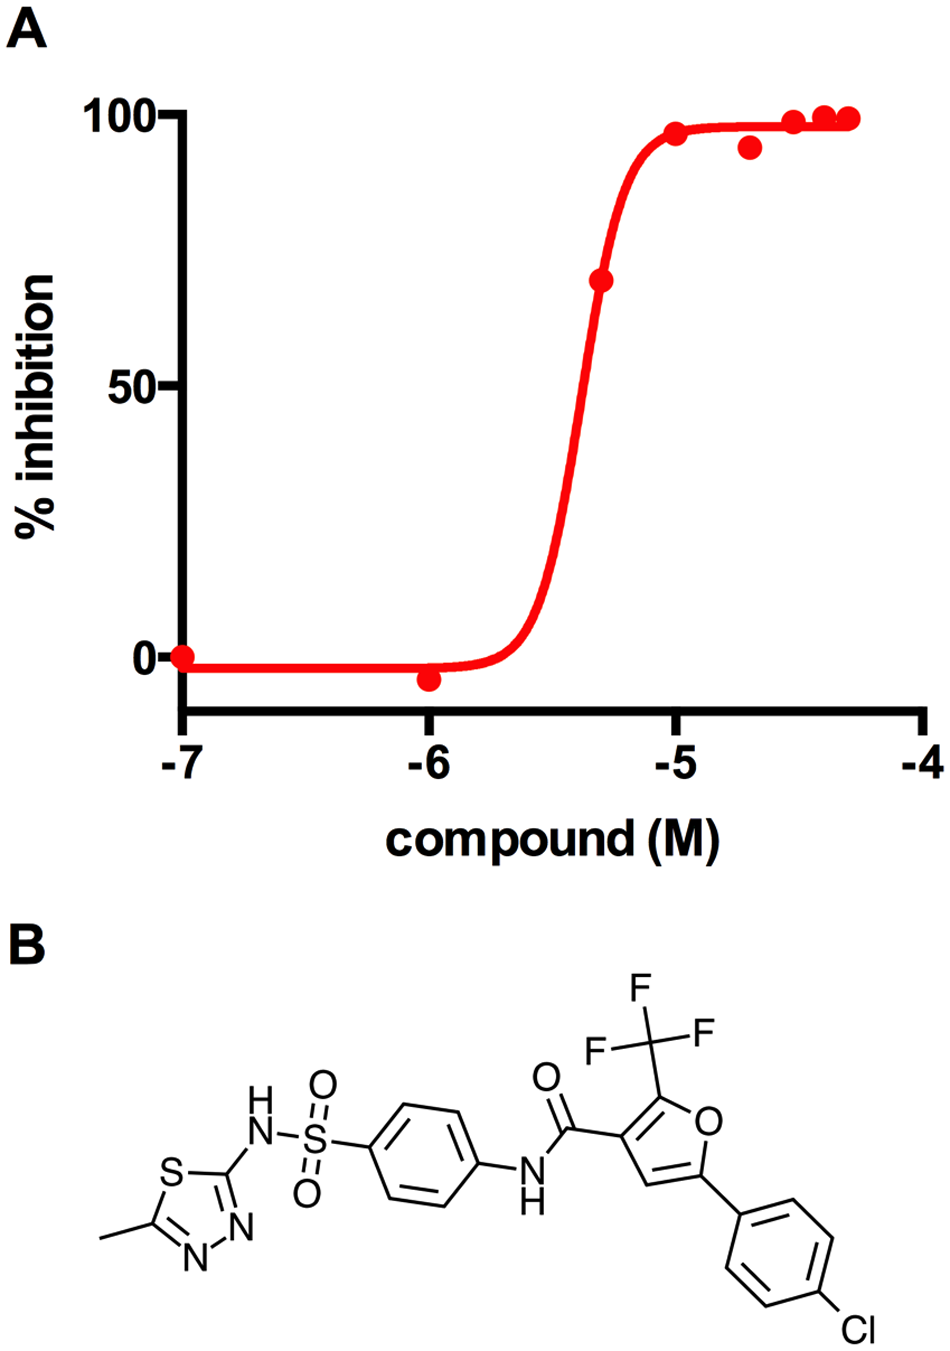 V-13–009920 inhibits the 2-methylcitrate synthase PrpC.